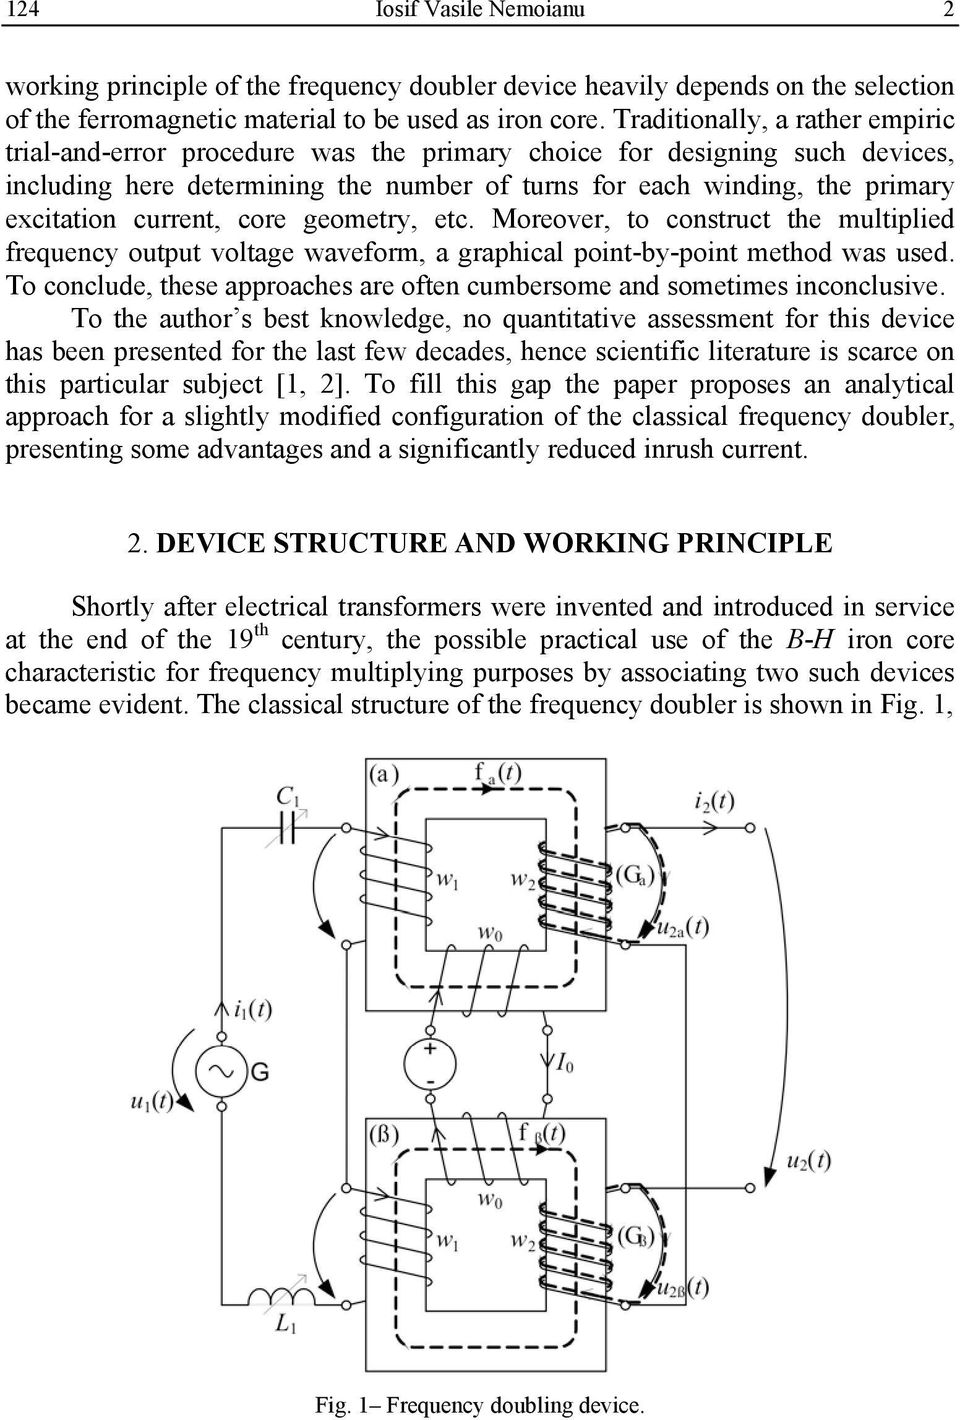 Study Of The Voltage Frequency Doubler With Nonlinear Iron Core Circuit Diagram Moreover To Construct Multiplied Output